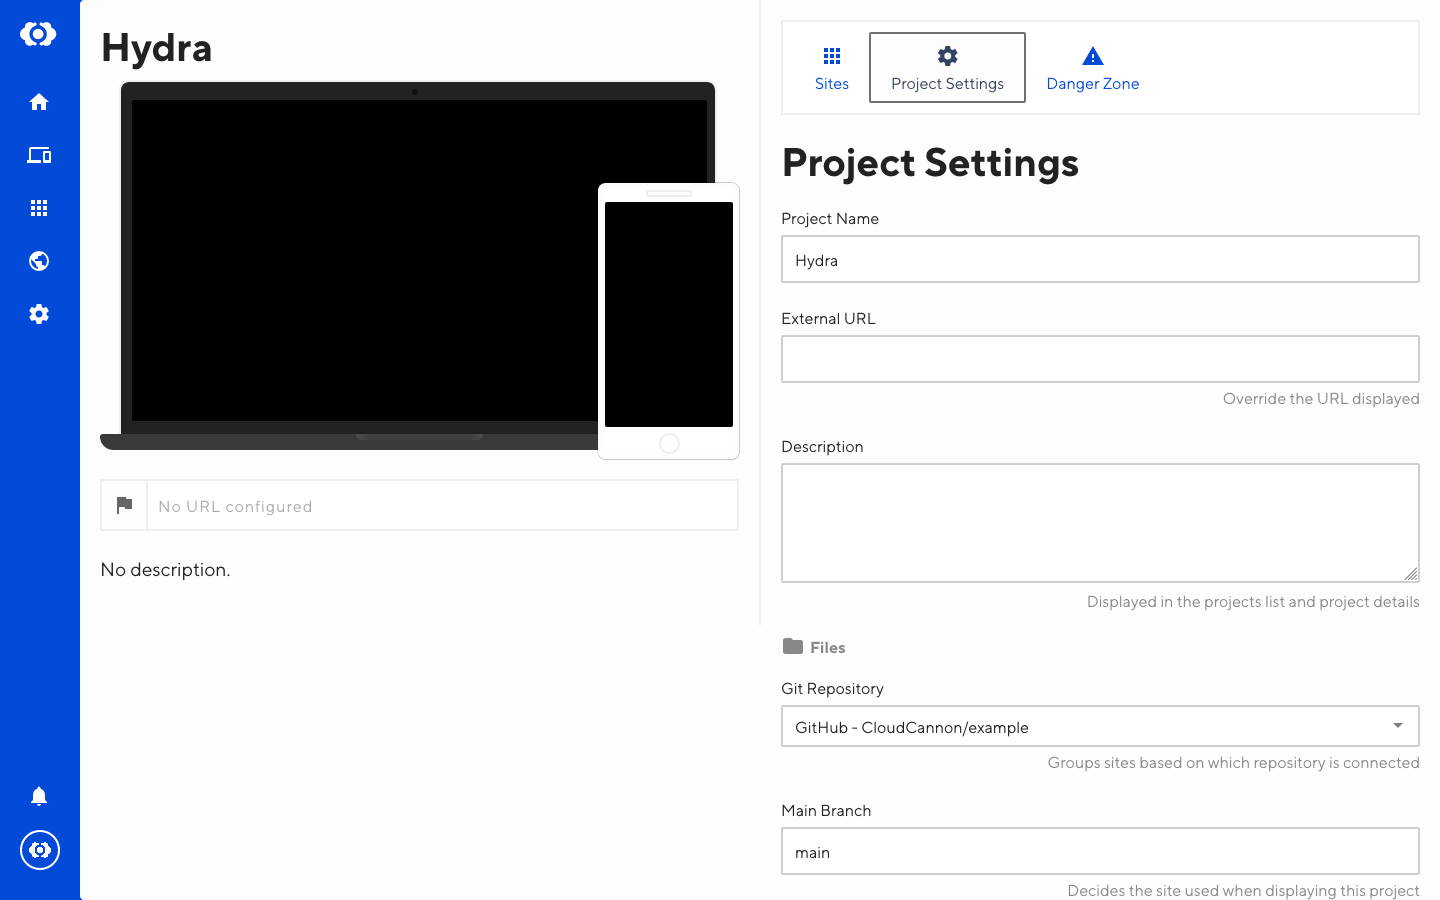 Screenshot of Project Settings interface